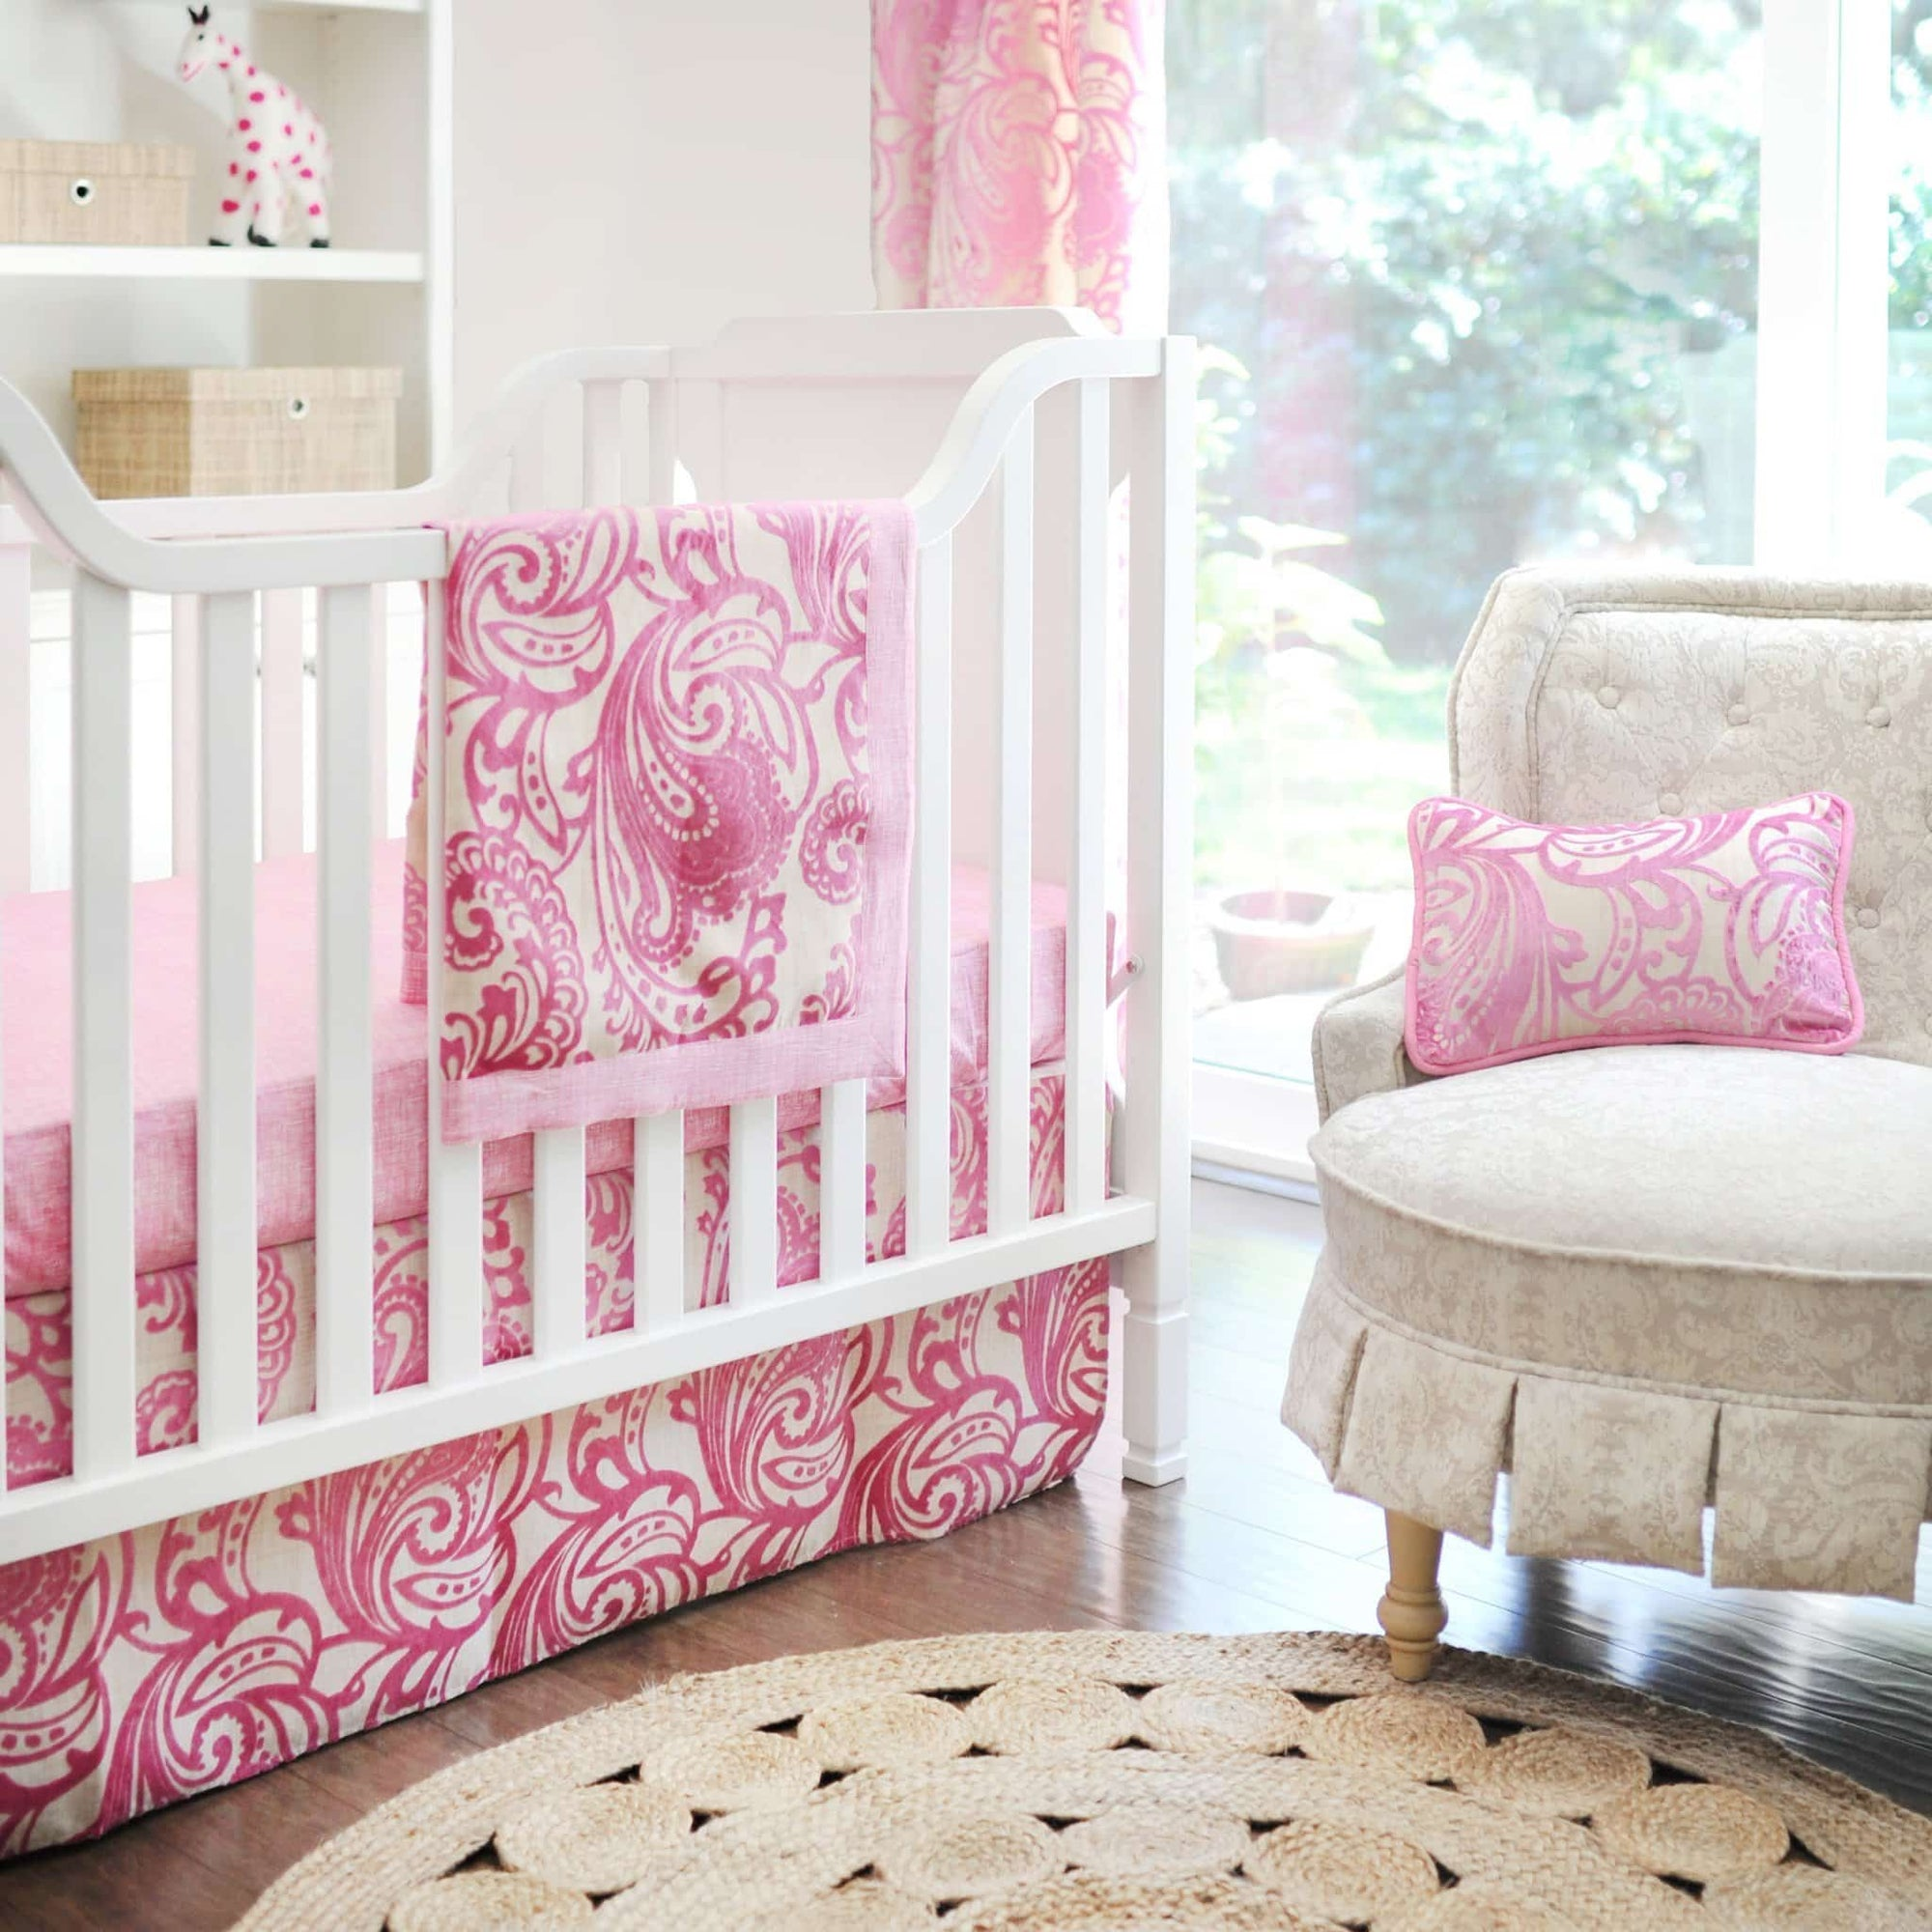 French Quarter White and Pink Baby Bedding Set-Crib Bedding Set-Jack and Jill Boutique